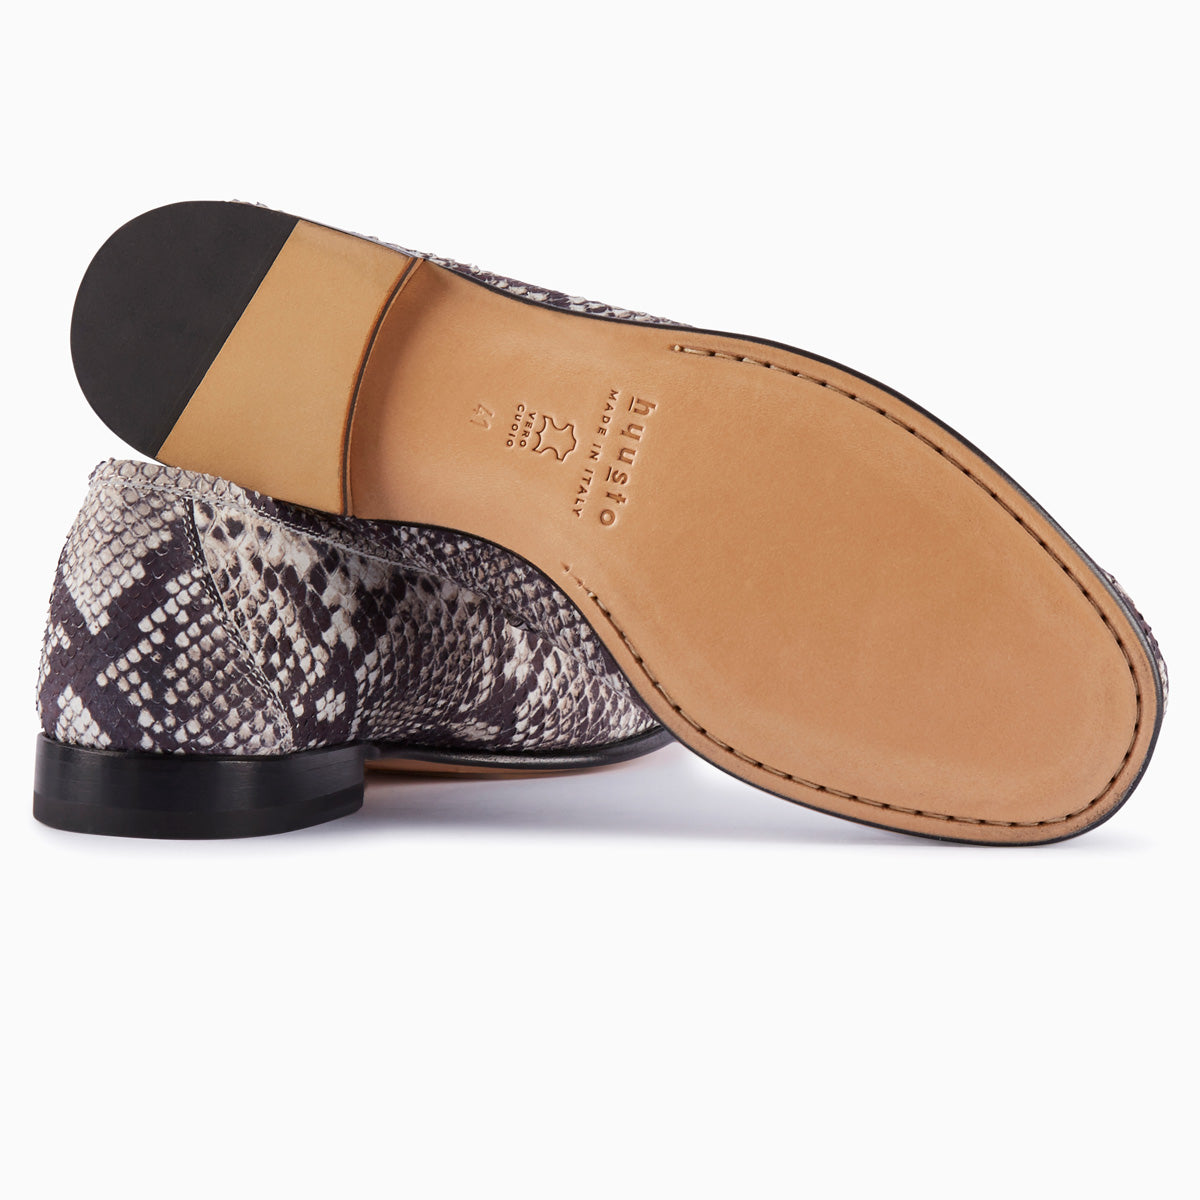 Hyusto Mick Moccasin rock python printed leather bottom view sole